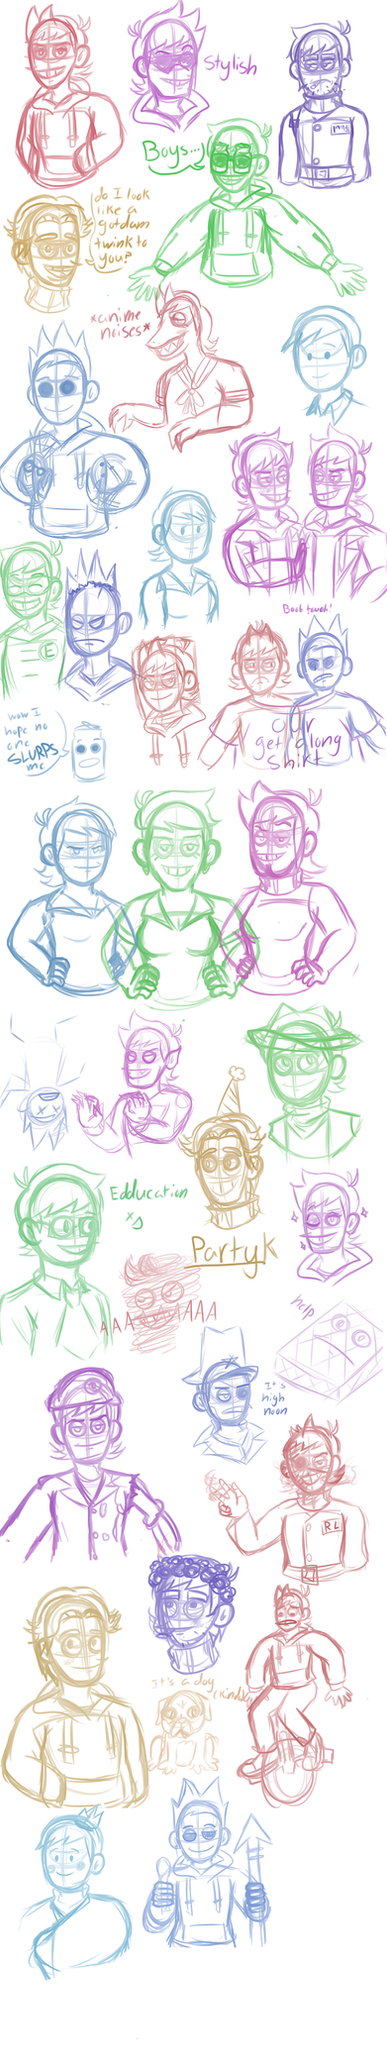 Eddsworld Stream Sketches by AstralTravell